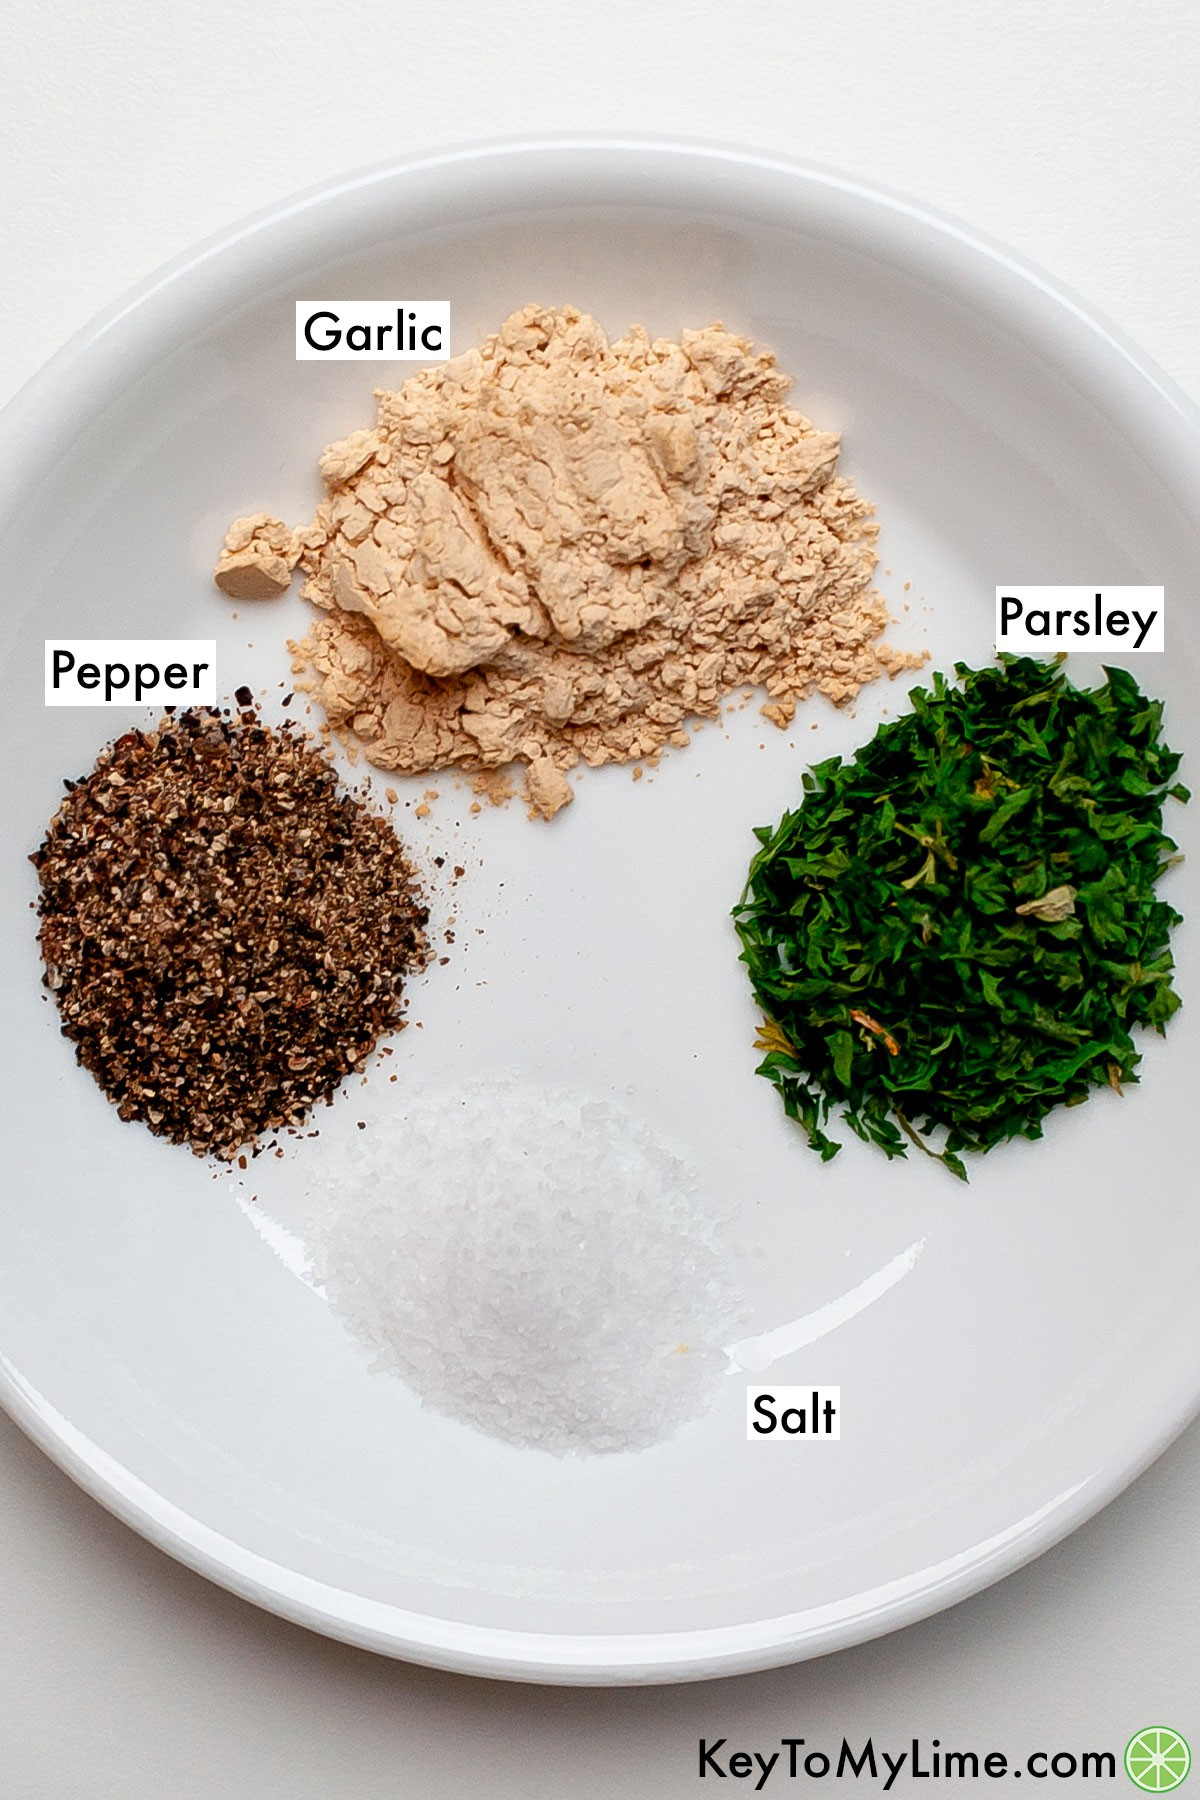 Piles of labeled garlic powder, parsley flakes, black pepper, and salt on a plate.